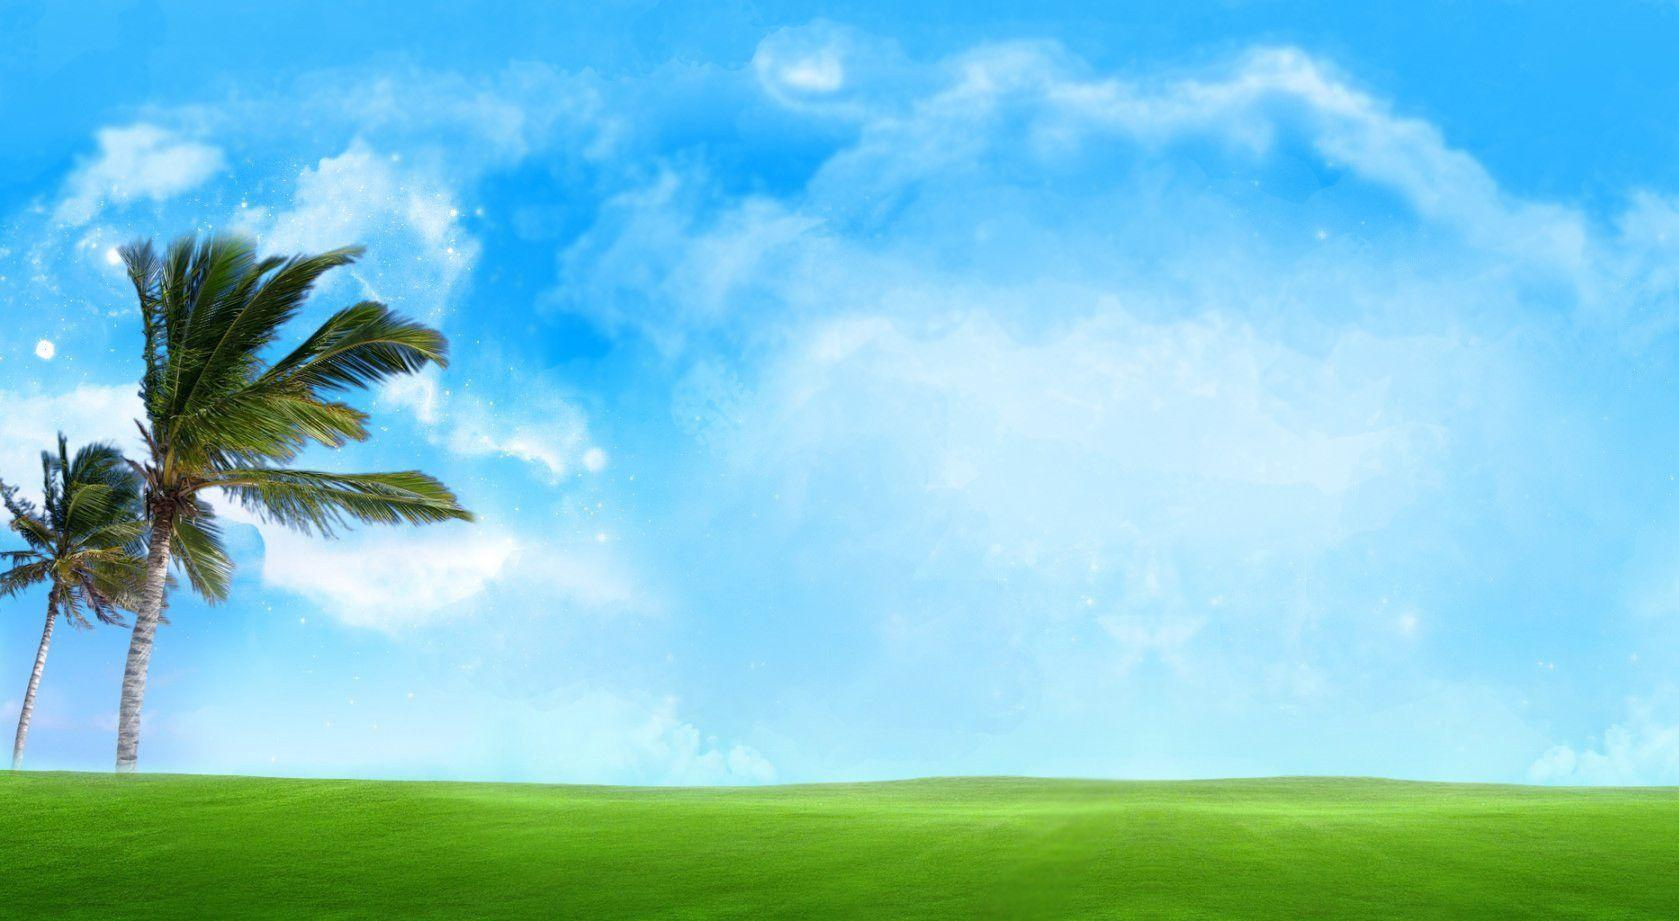 sky desktop wallpaper - photo #38